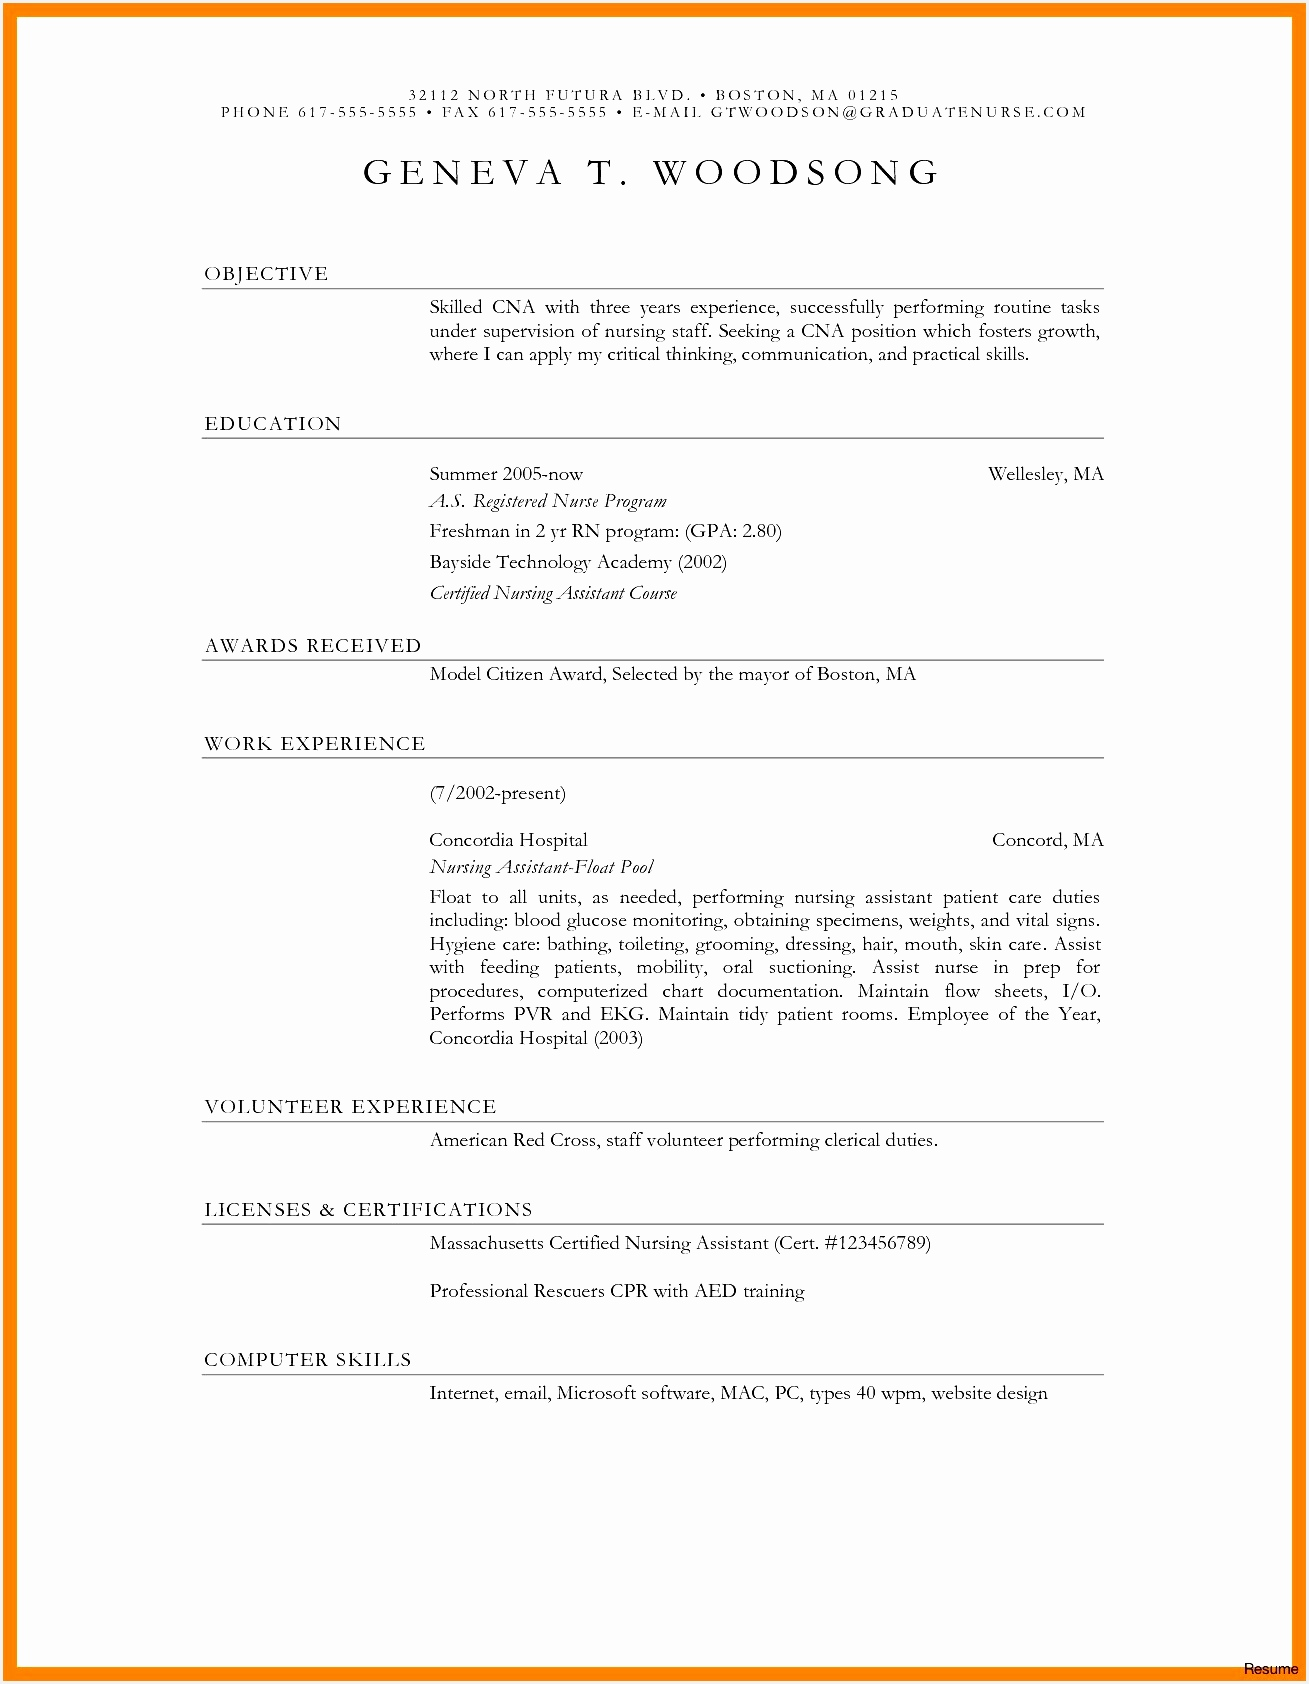 Free Sample Resume Templates New New Blank Resume format Resume Templats Unique formatted Resume 0d16841309